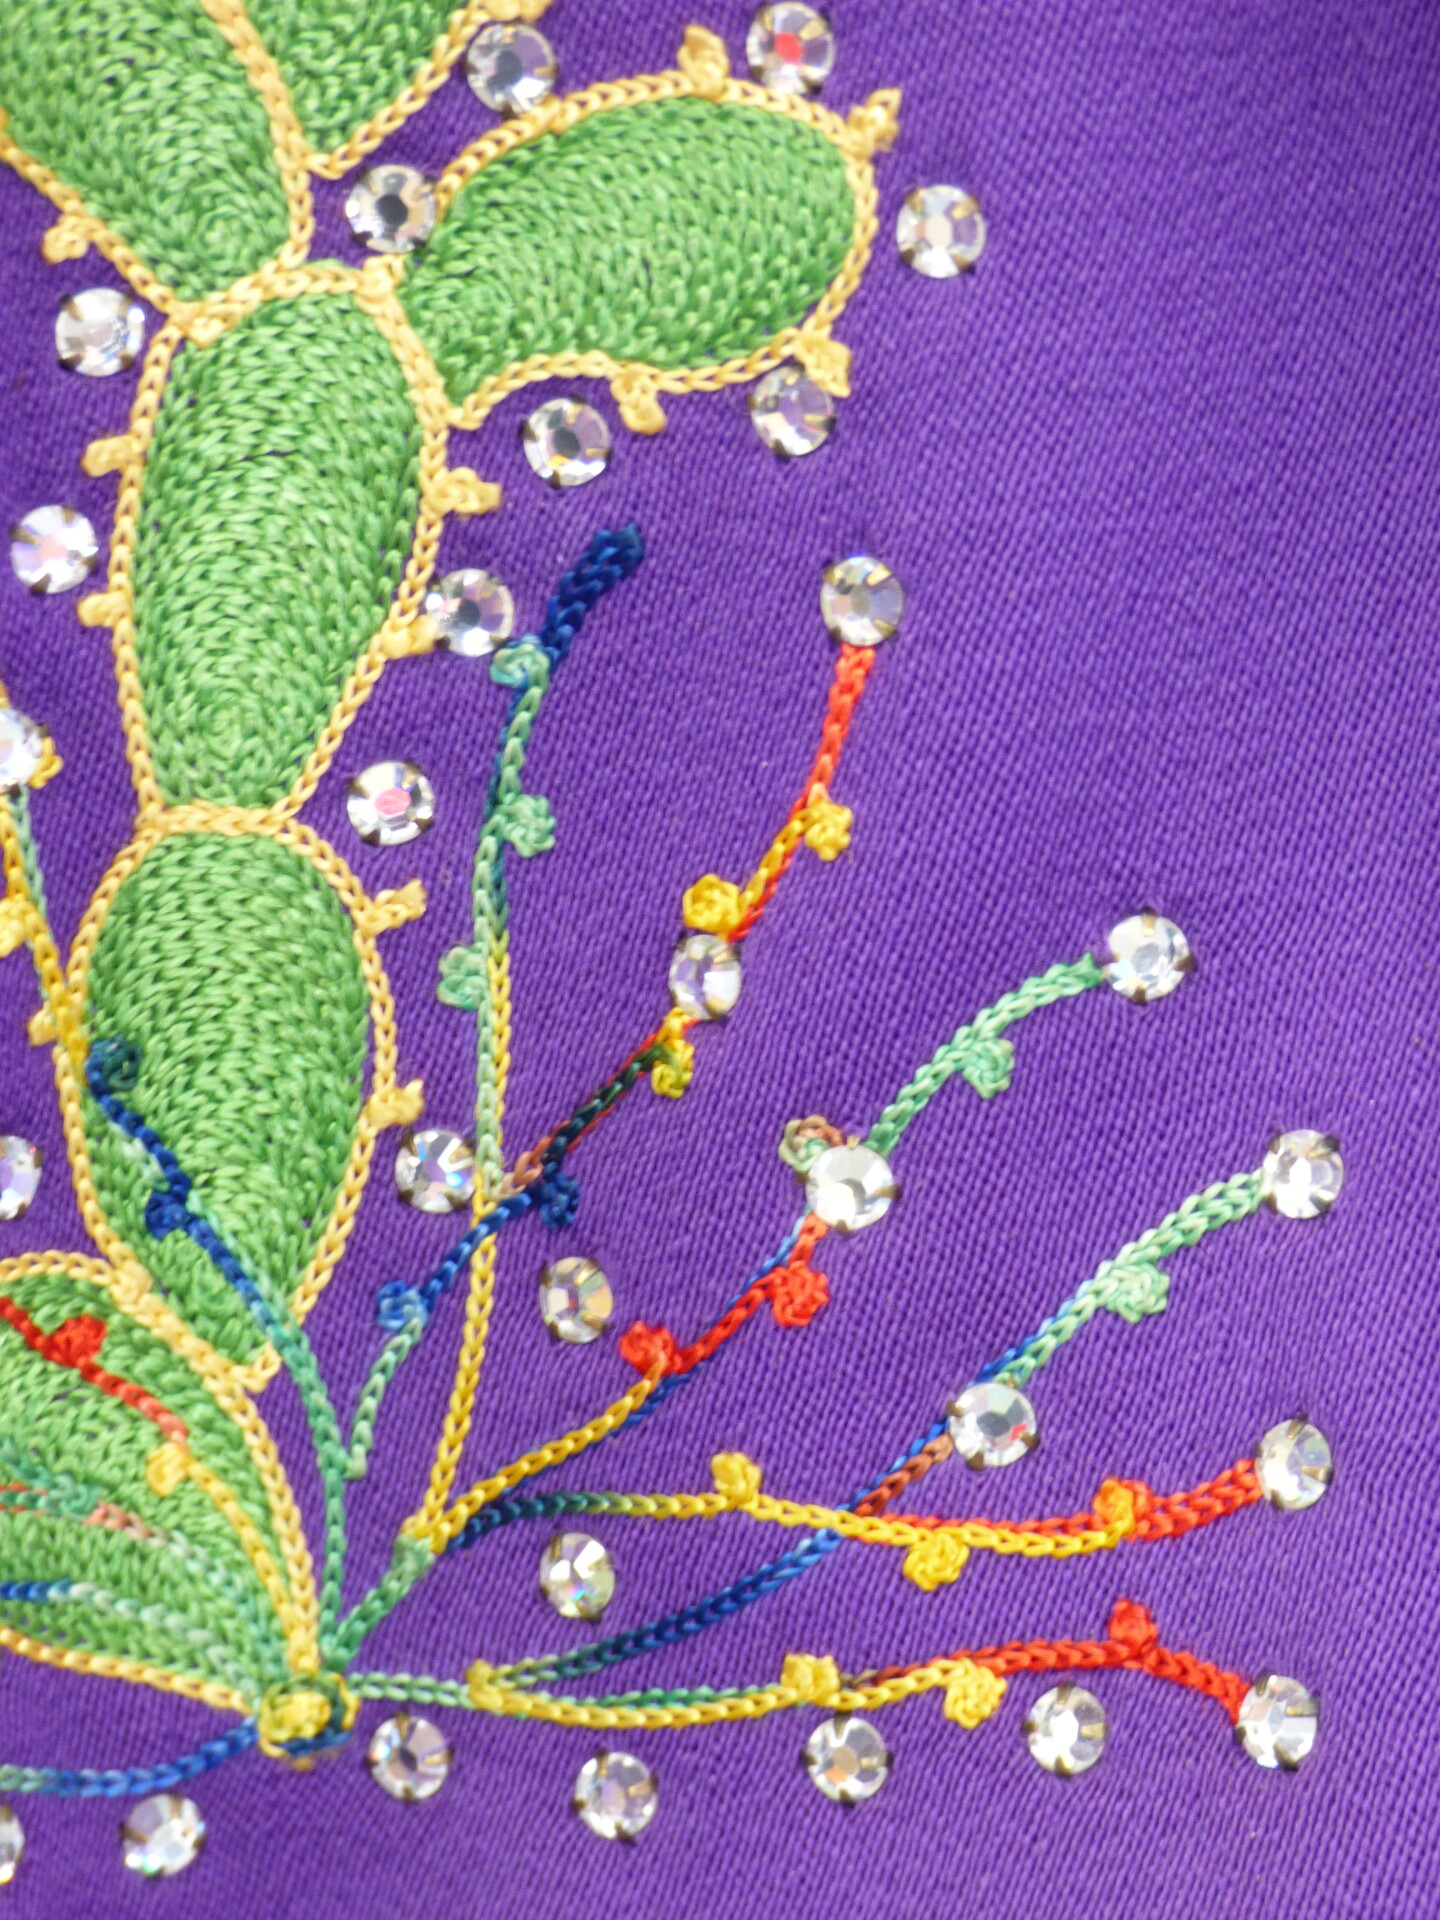 A detail of a Nudie suit showing embroidery on a cactus | Carren Jao